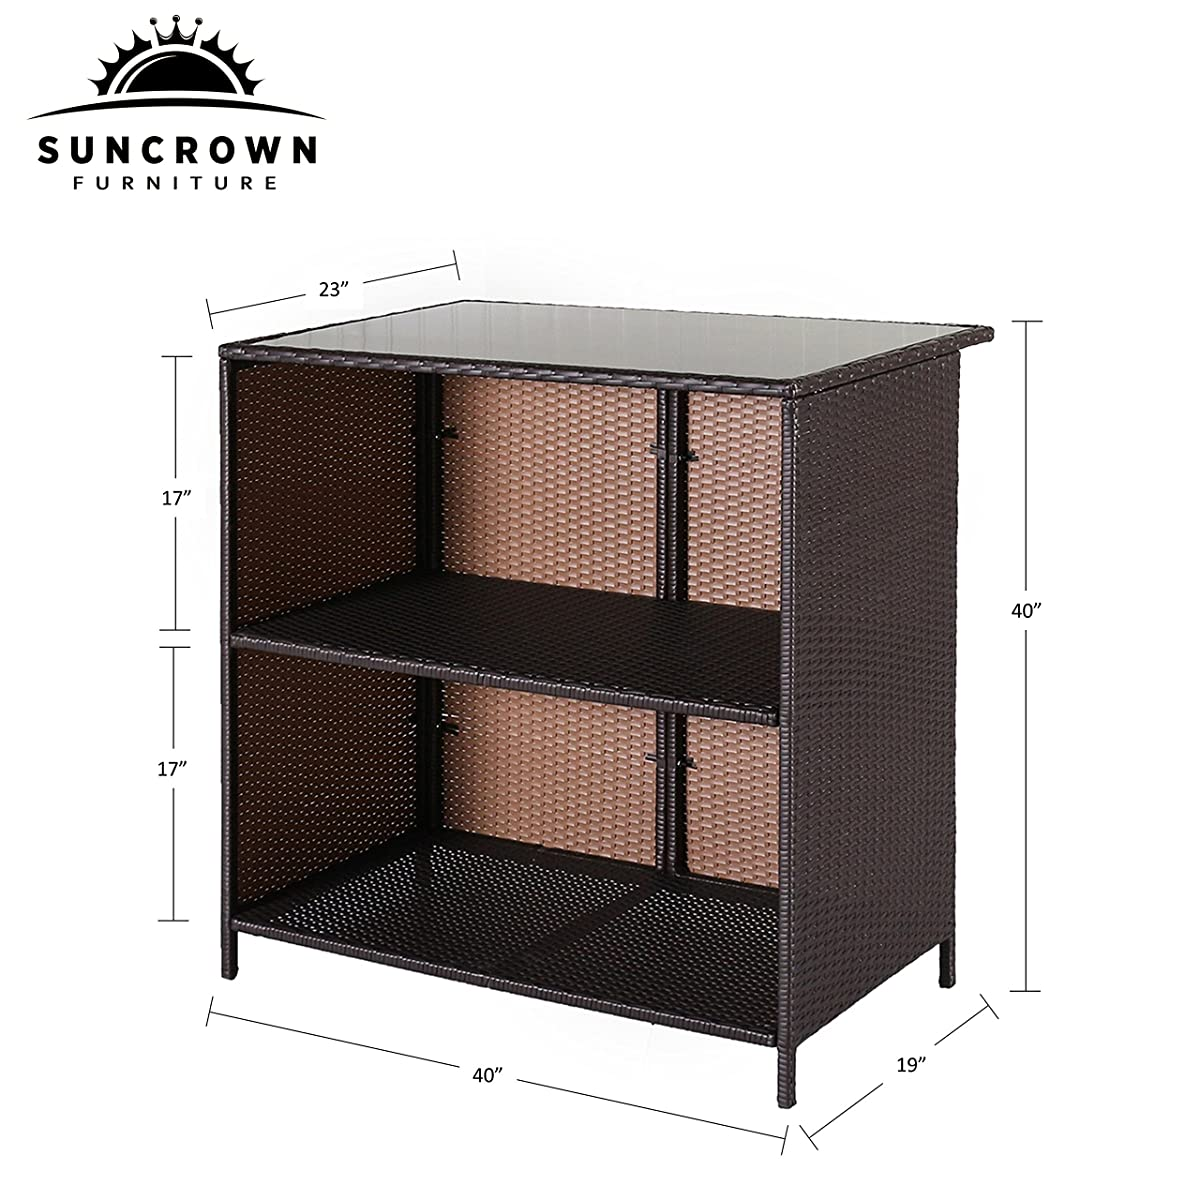 Suncrown Outdoor 3-Piece Brown Wicker Bar Set: Glass Bar and Two Stools with Cushions - Perfect for Patios, Backyards, Porches, Gardens or Poolside